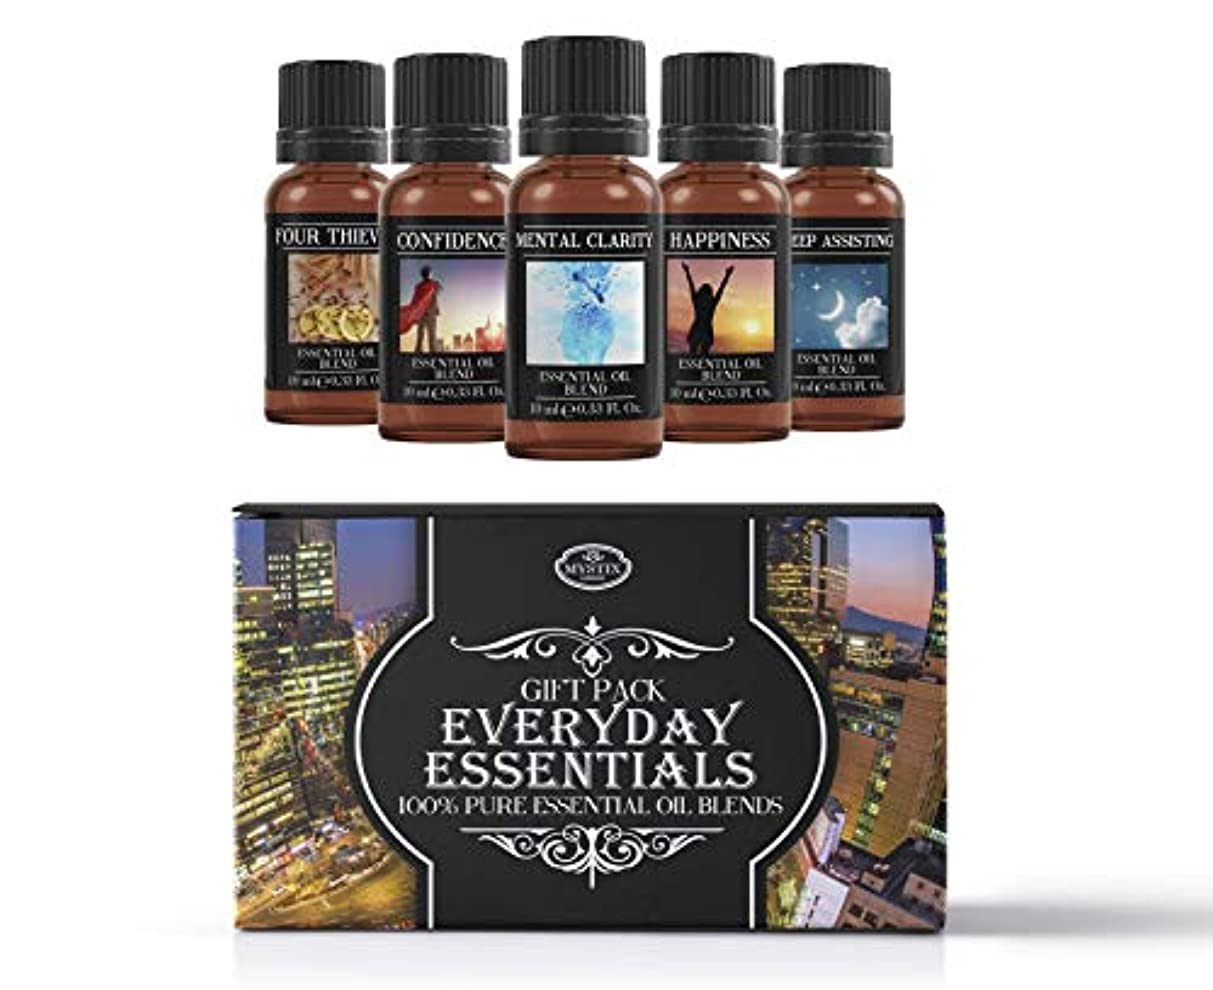 デマンド雄大な降下Everyday Essentials | Essential Oil Blend Gift Pack | Confidence, Four Thieves, Happiness, Mental Clarity, Sleep...